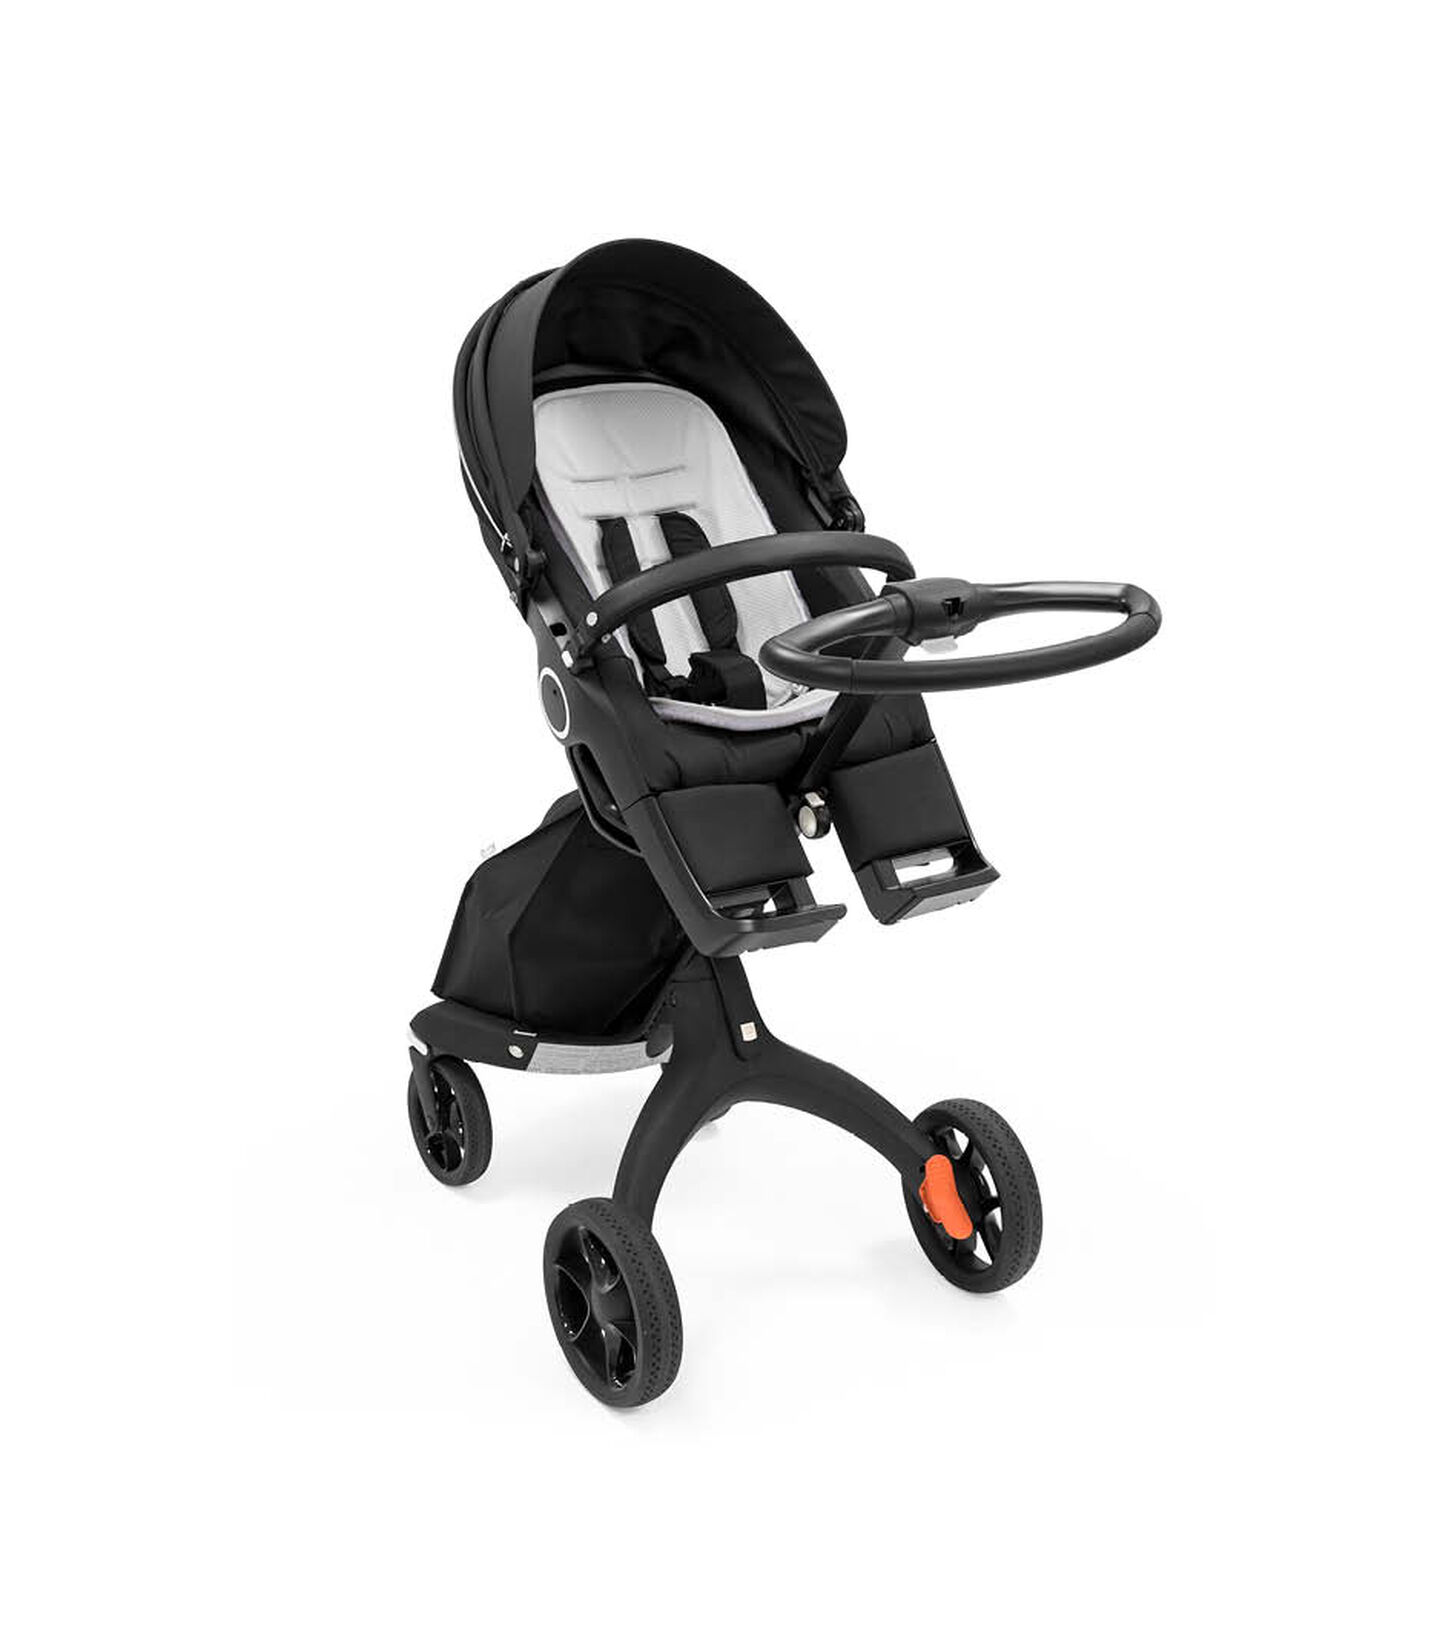 Stokke® Xplory® with Stokke® Stroller Seat and tokke® Stroller All Weather Inlay, cooling polyester. view 5